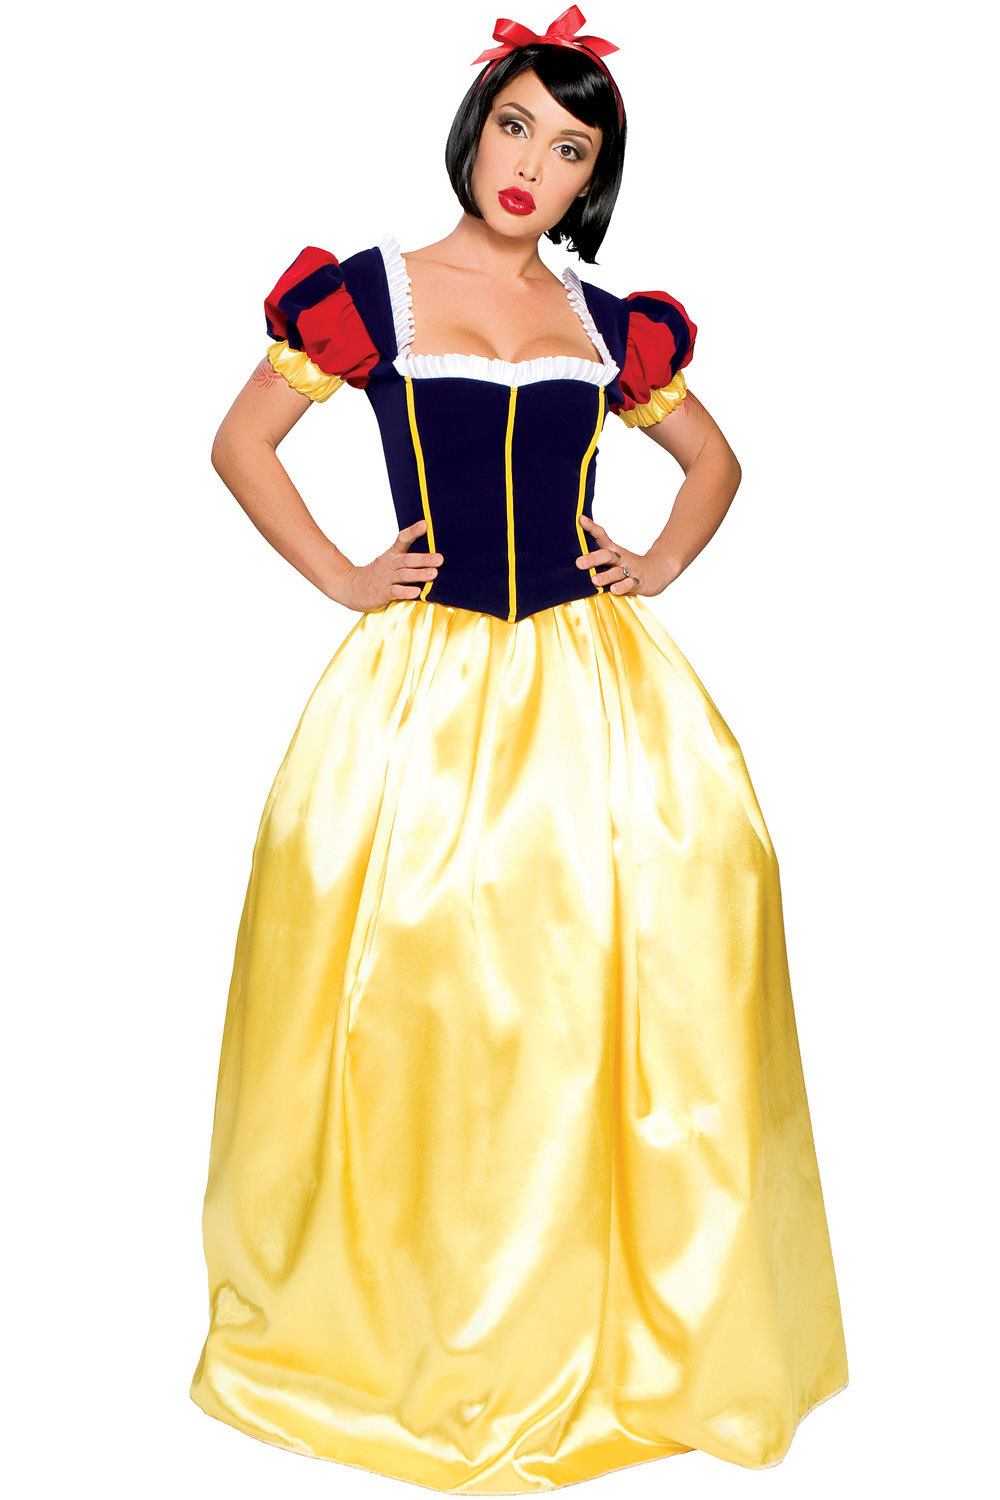 e7e12e831092 Get Quotations · 2015 Deluxe Snow White Princess Dress Halloween Party  Cosplay Costume Adult Women Girl Fairy Tale Fancy